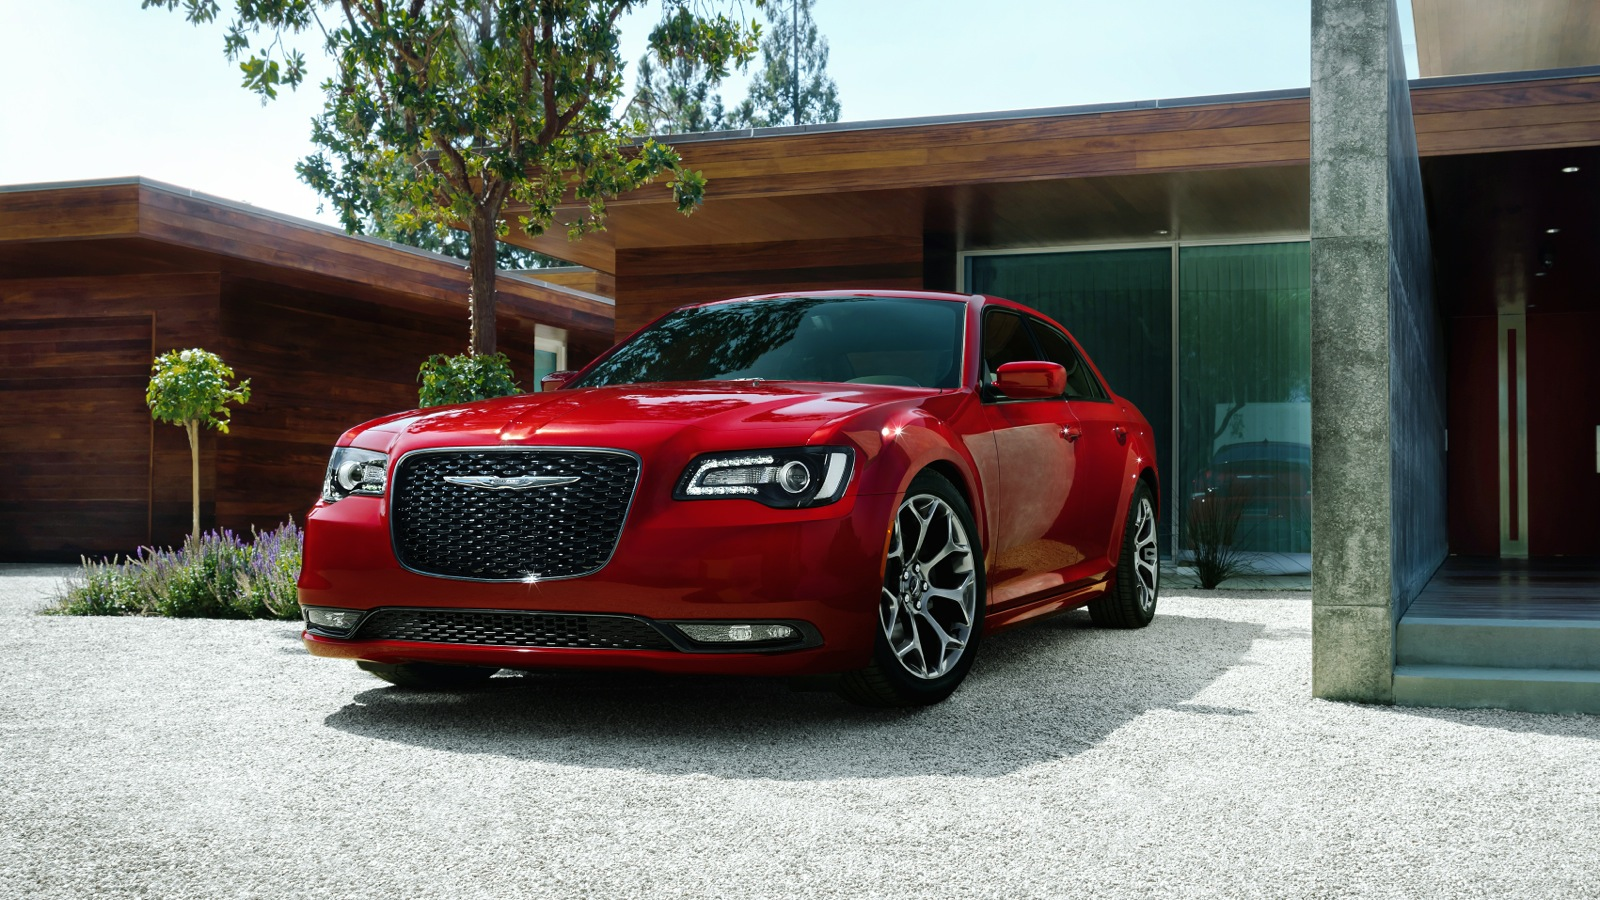 2015 chrysler 300 revealed large sedan facelifted. Black Bedroom Furniture Sets. Home Design Ideas